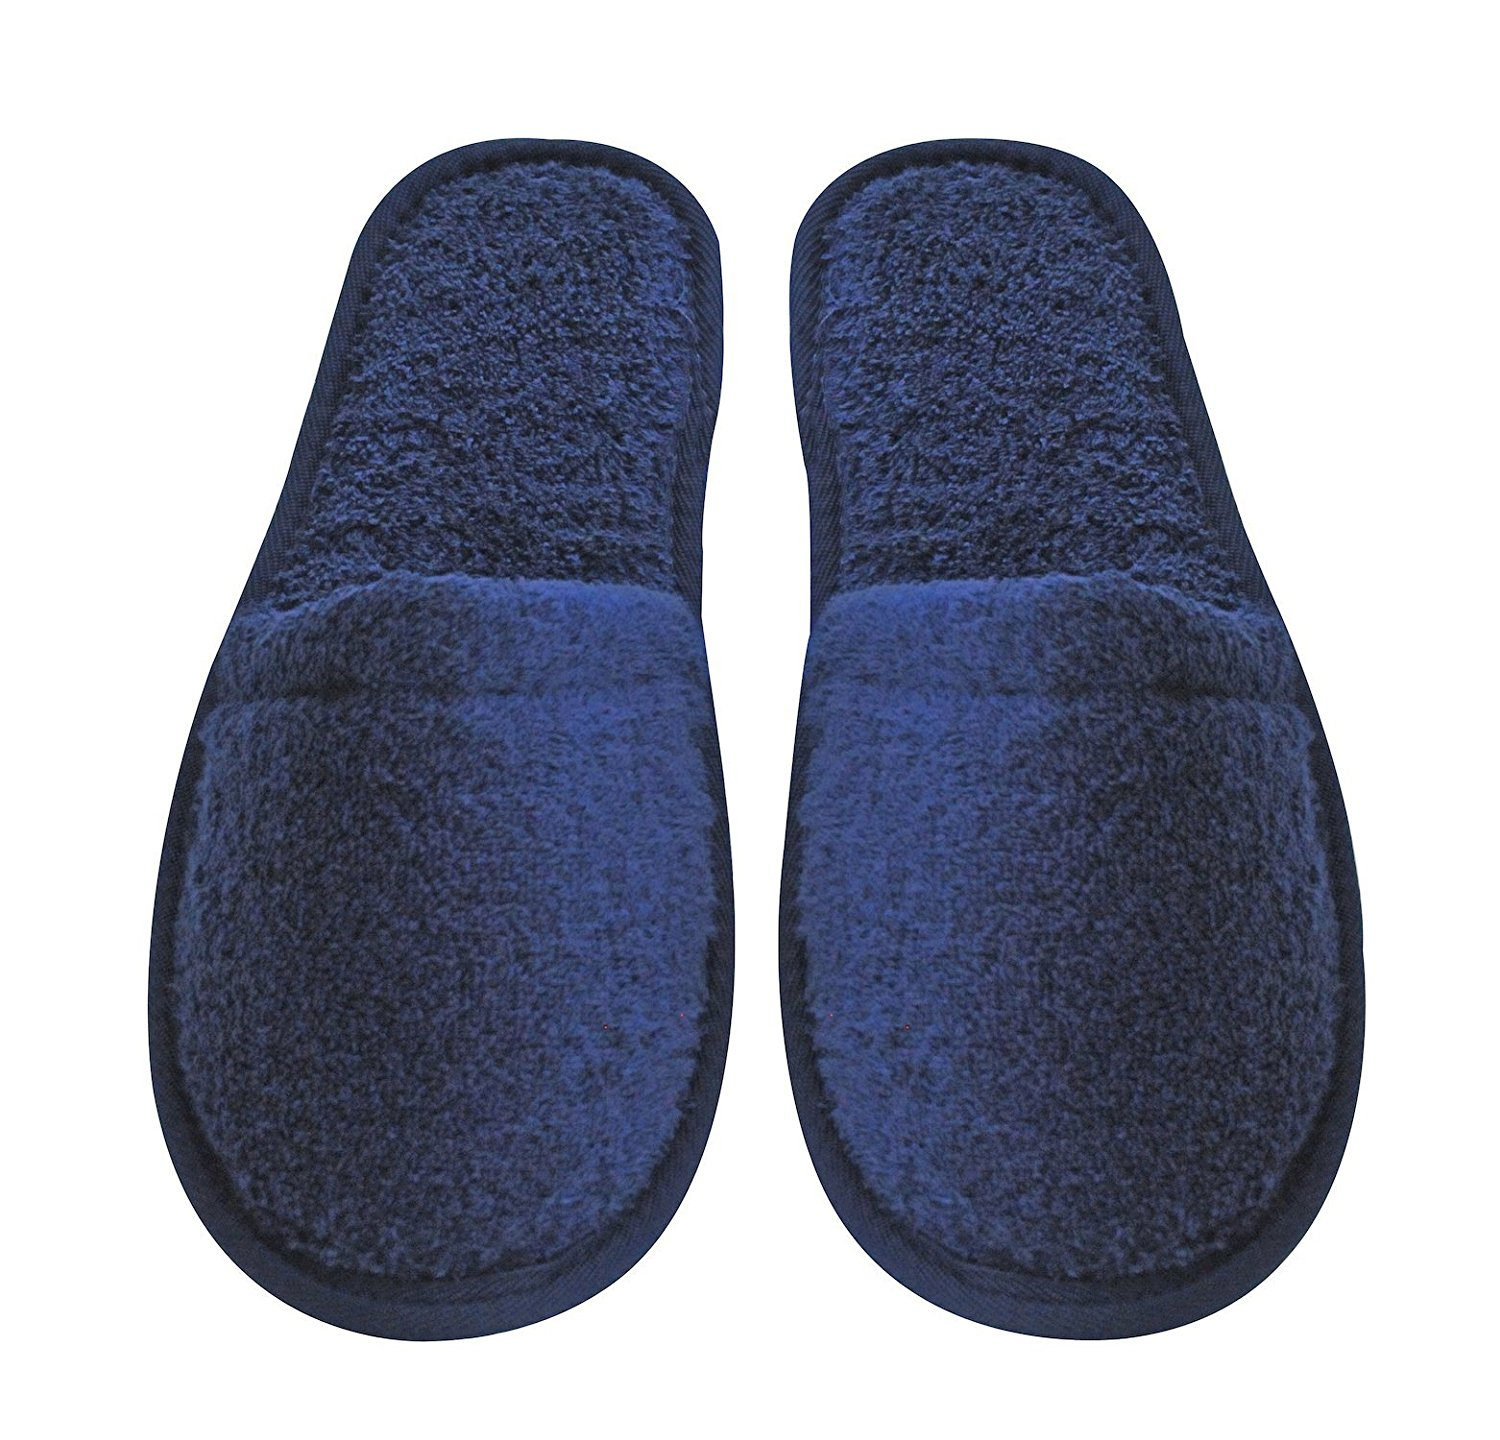 Arus Women's Turkish Organic Terry Cotton Cloth Spa Slippers One Size Fits Most, Navy Blue with Black Sole